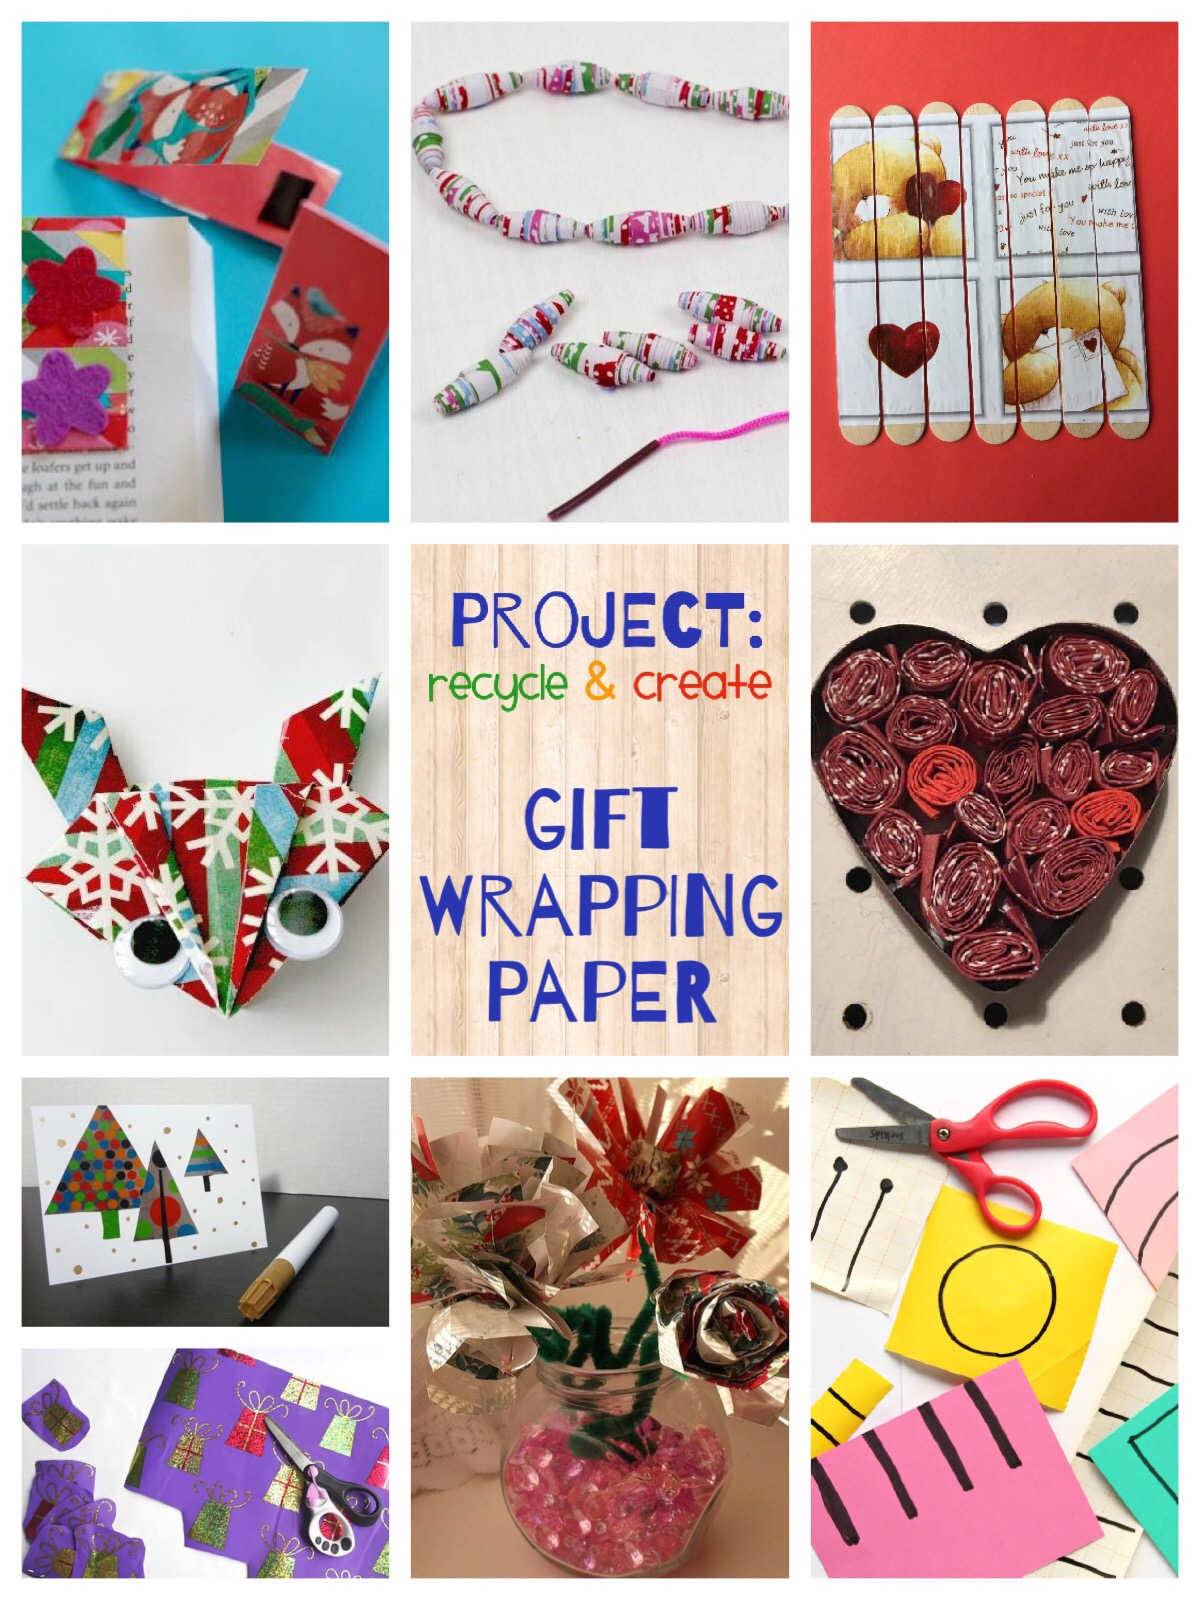 Recycled Gift Wrapping Paper ideas